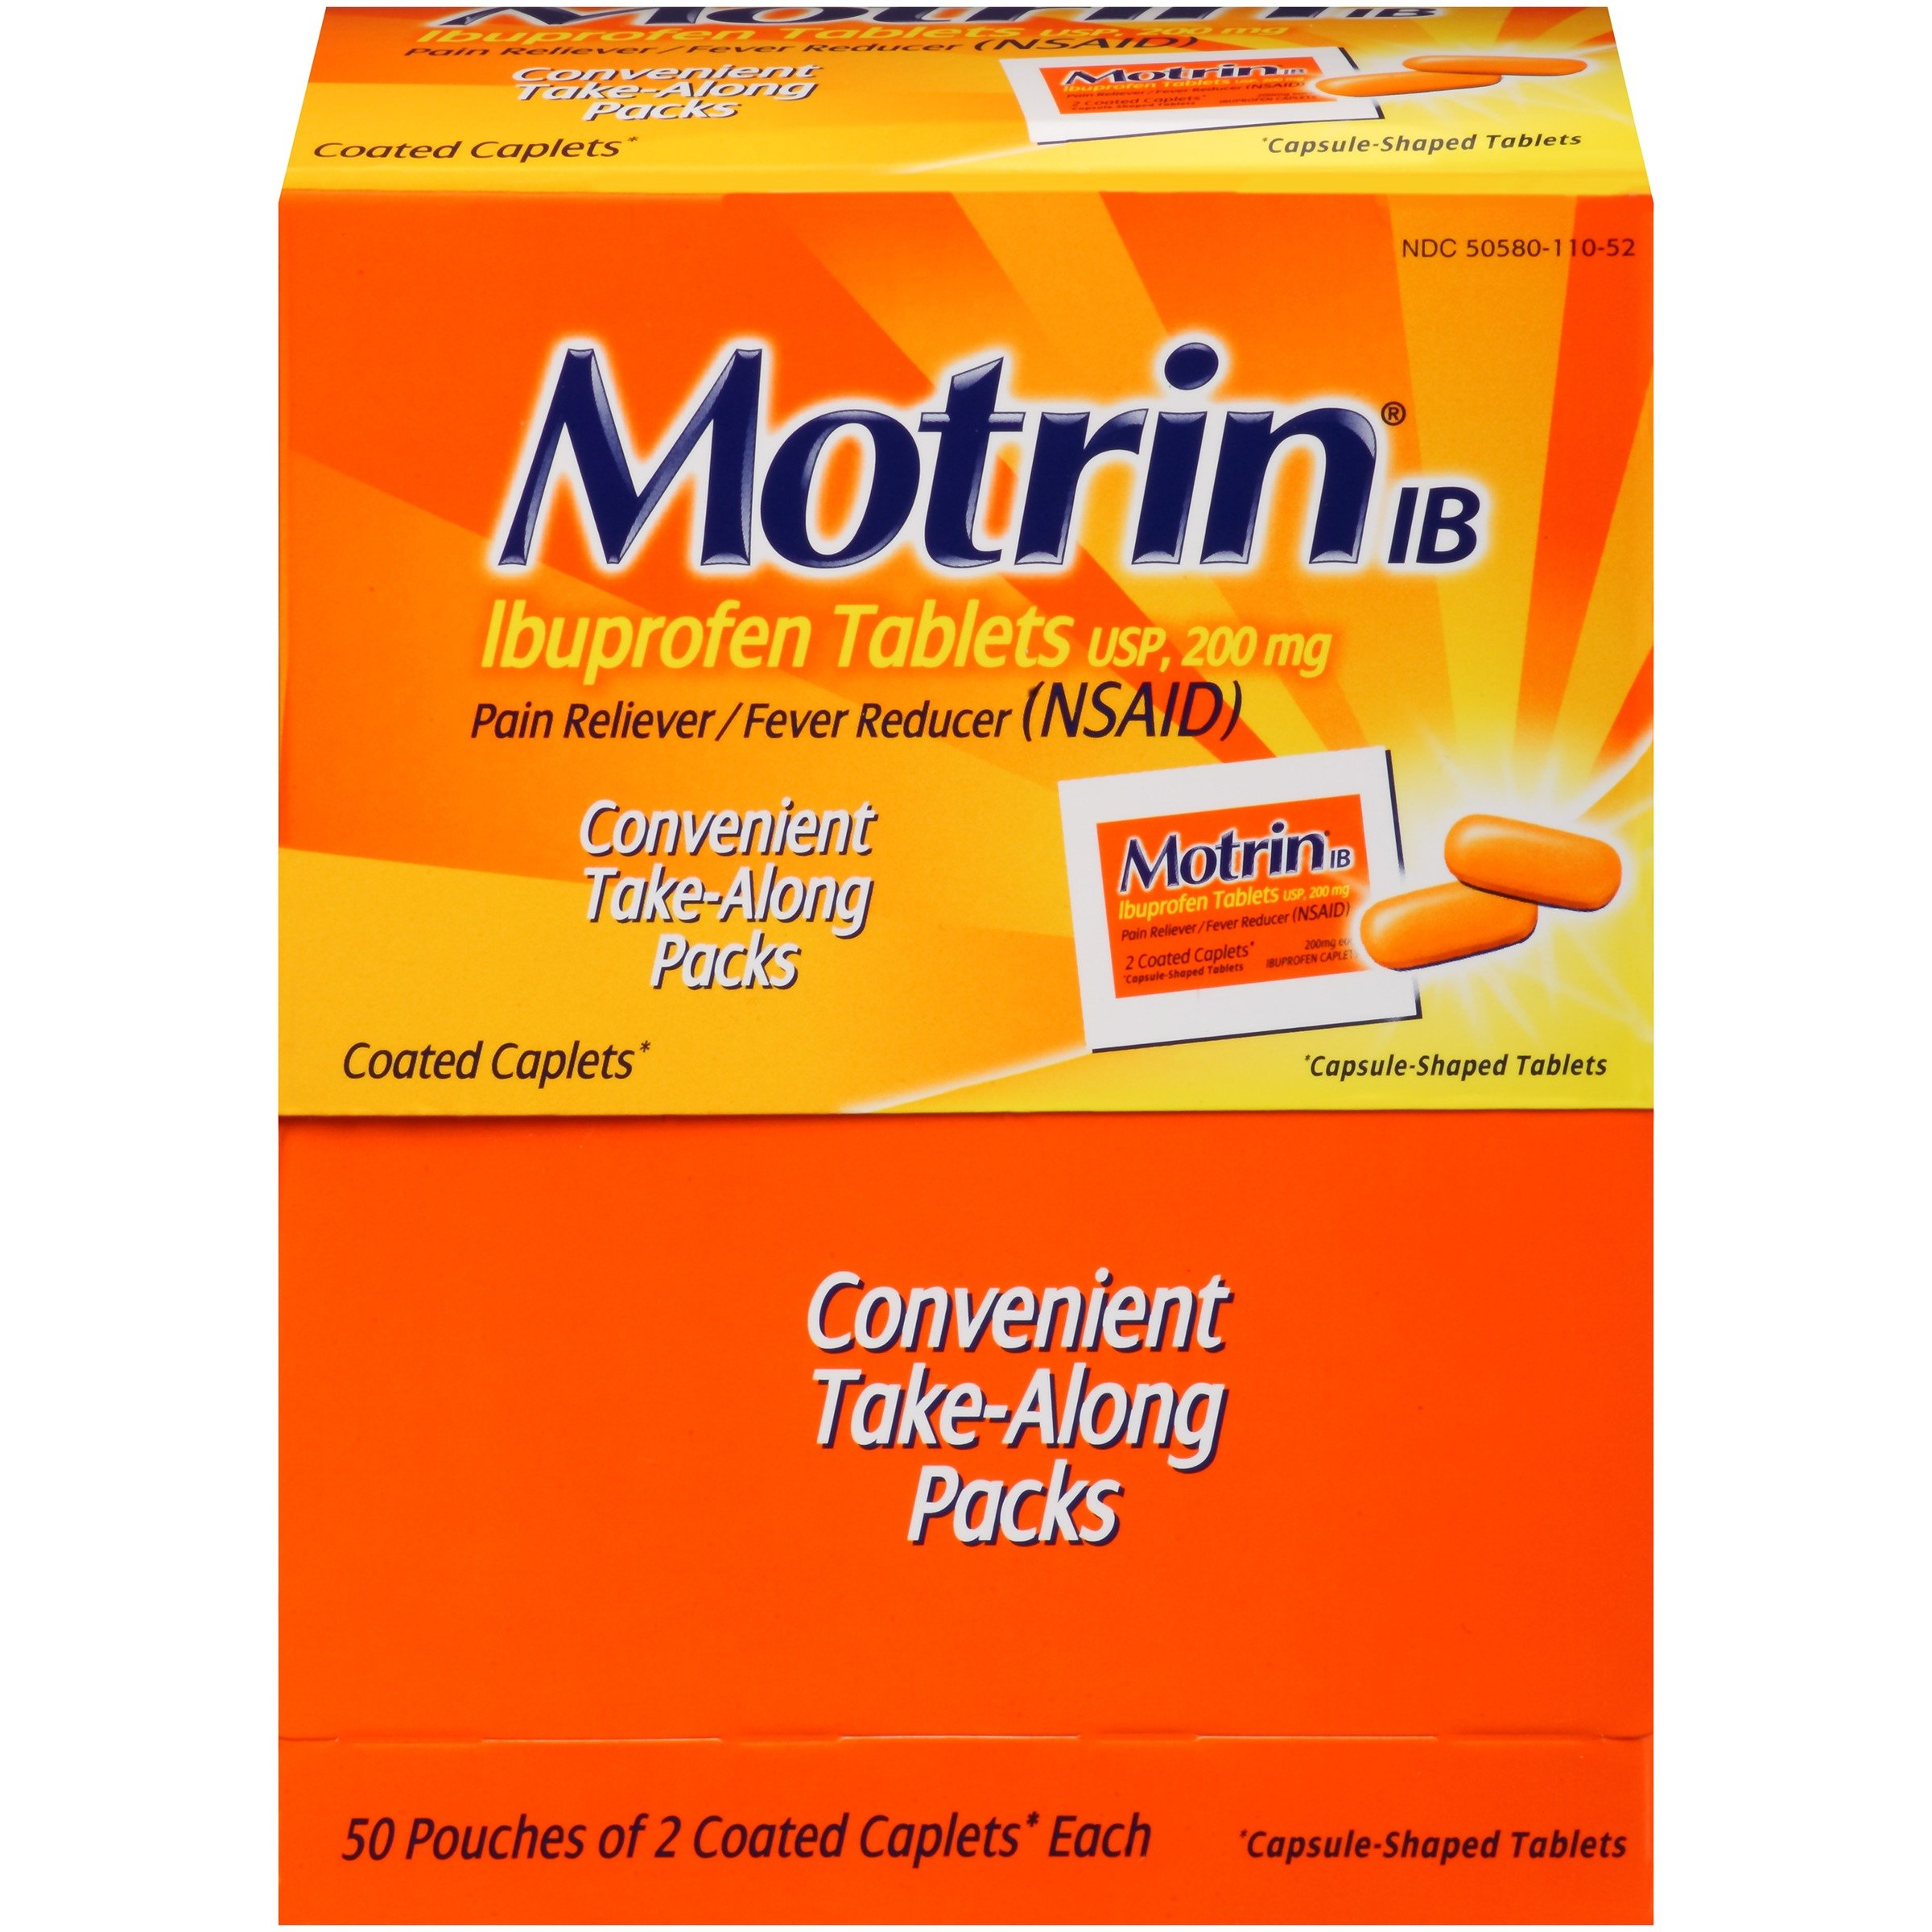 Motrin IB Caplets, Ibuprofen, Aches and Pain Relief, 50 Count, Pack of 2 by Motrin